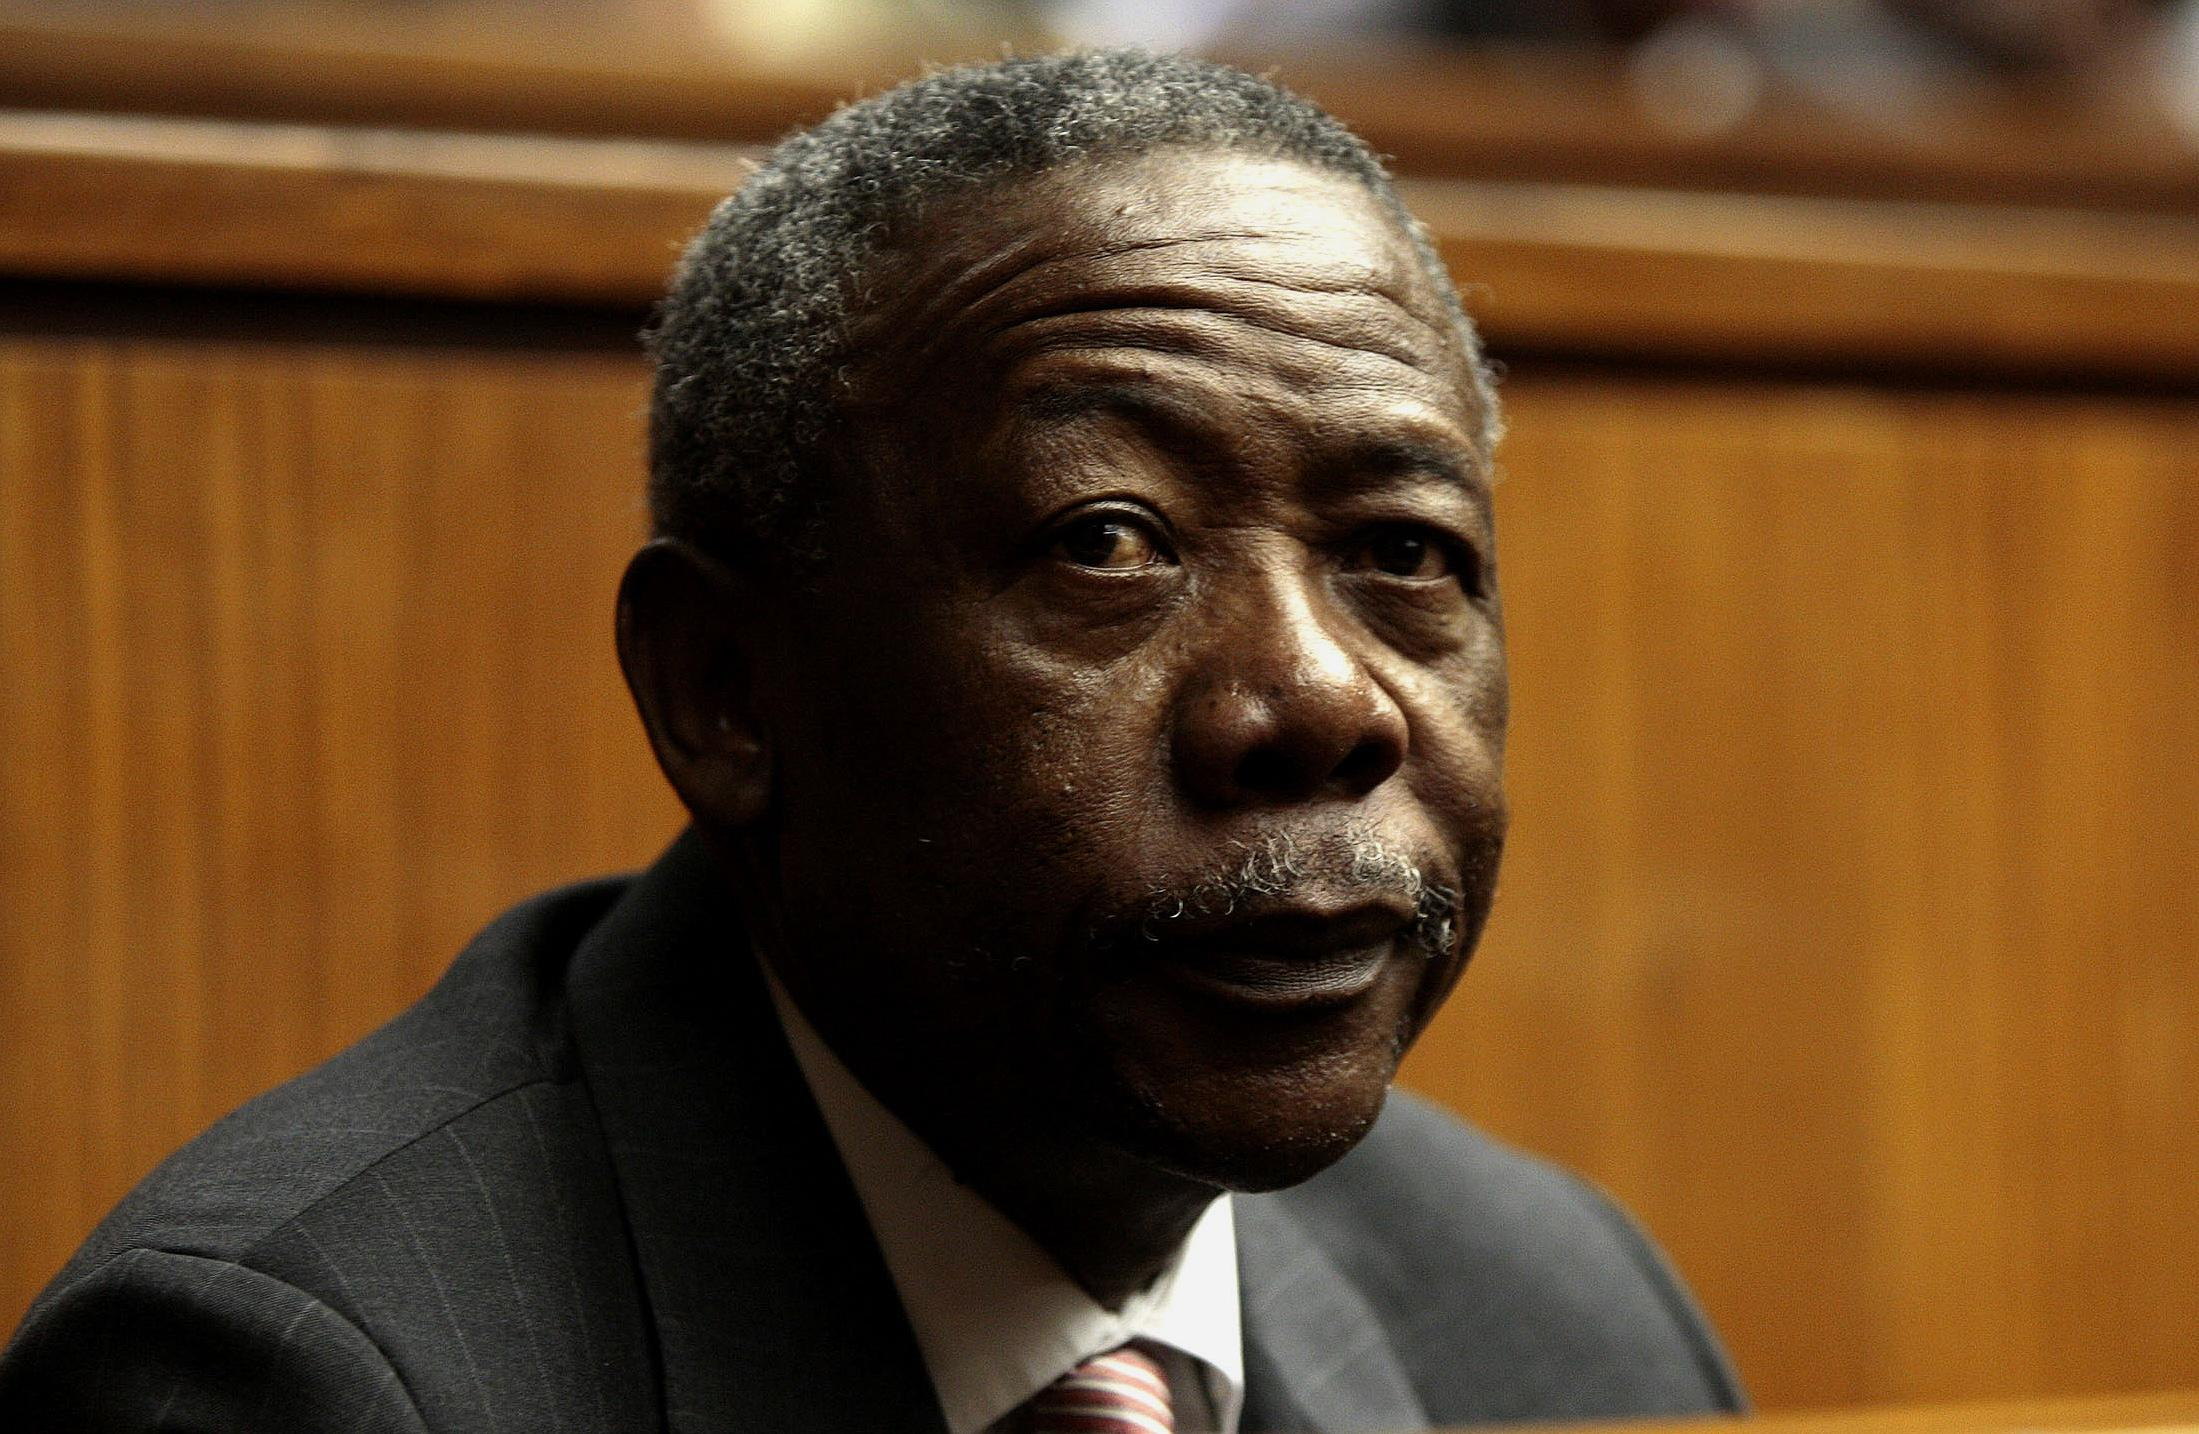 SAfrica former police chief dies, was jailed for corruption